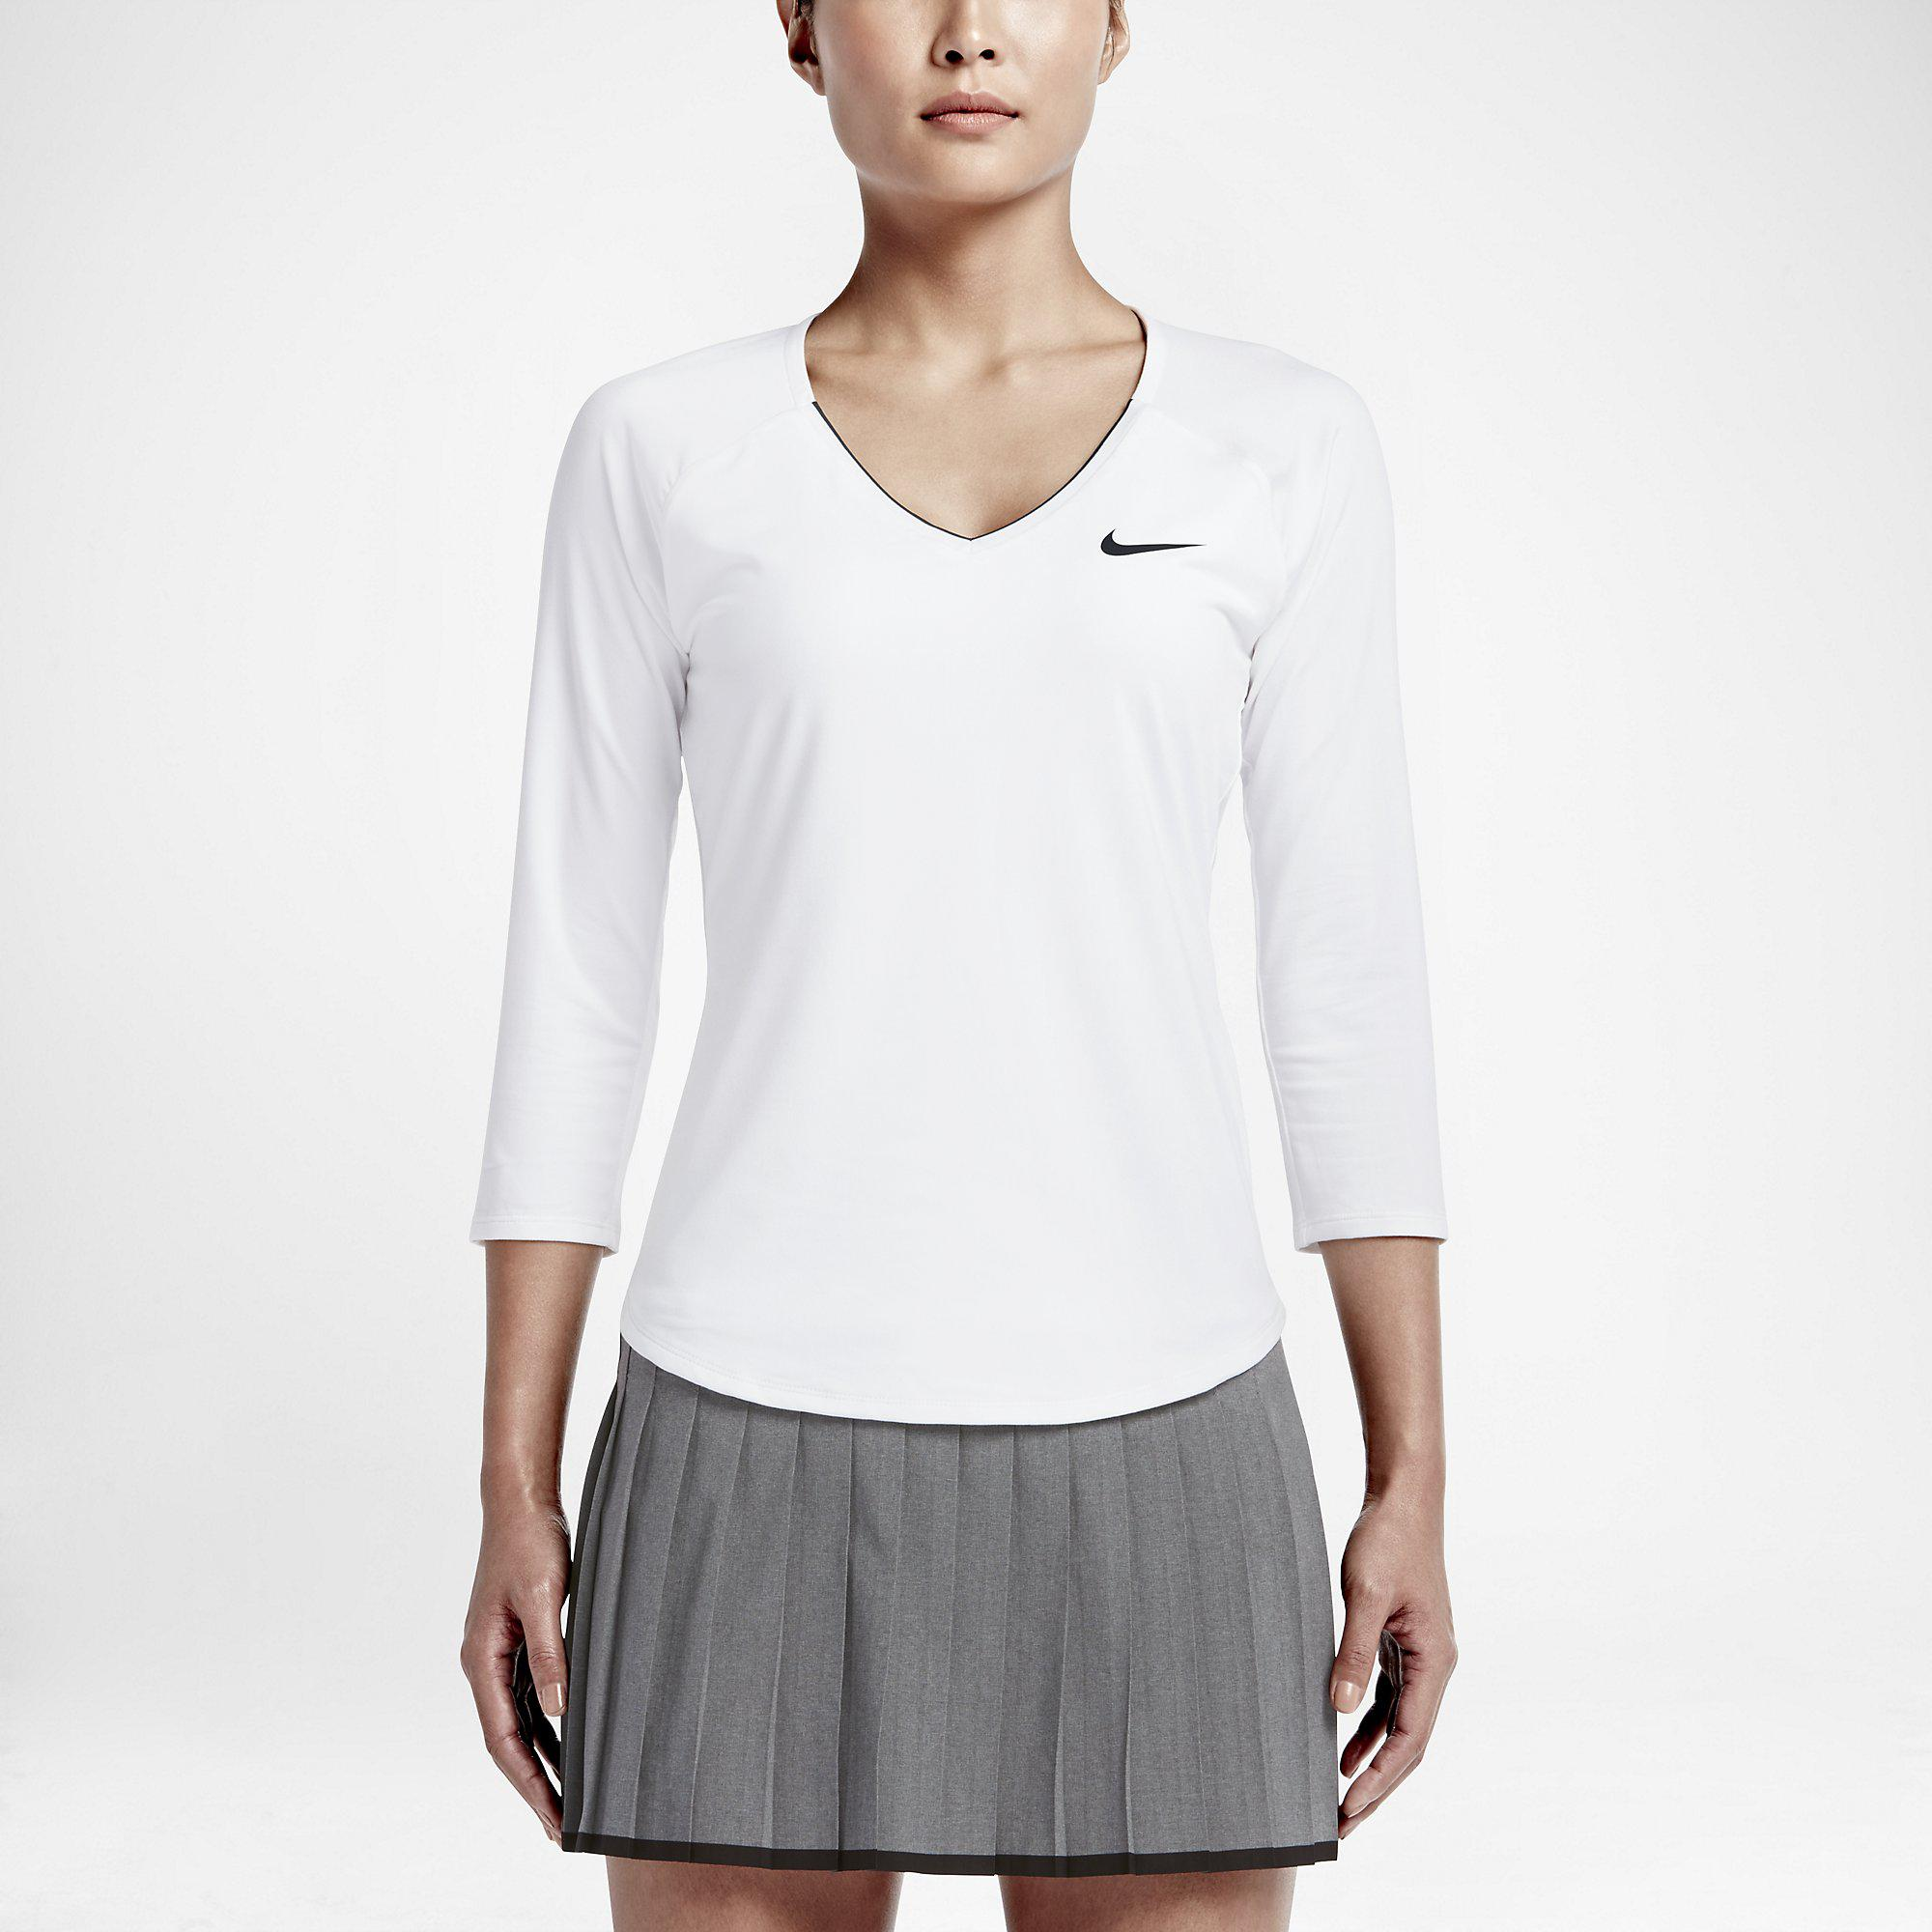 1ff7c5e23 Nike Womens Pure Long-Sleeve 'V' Top - White/Black - Tennisnuts.com